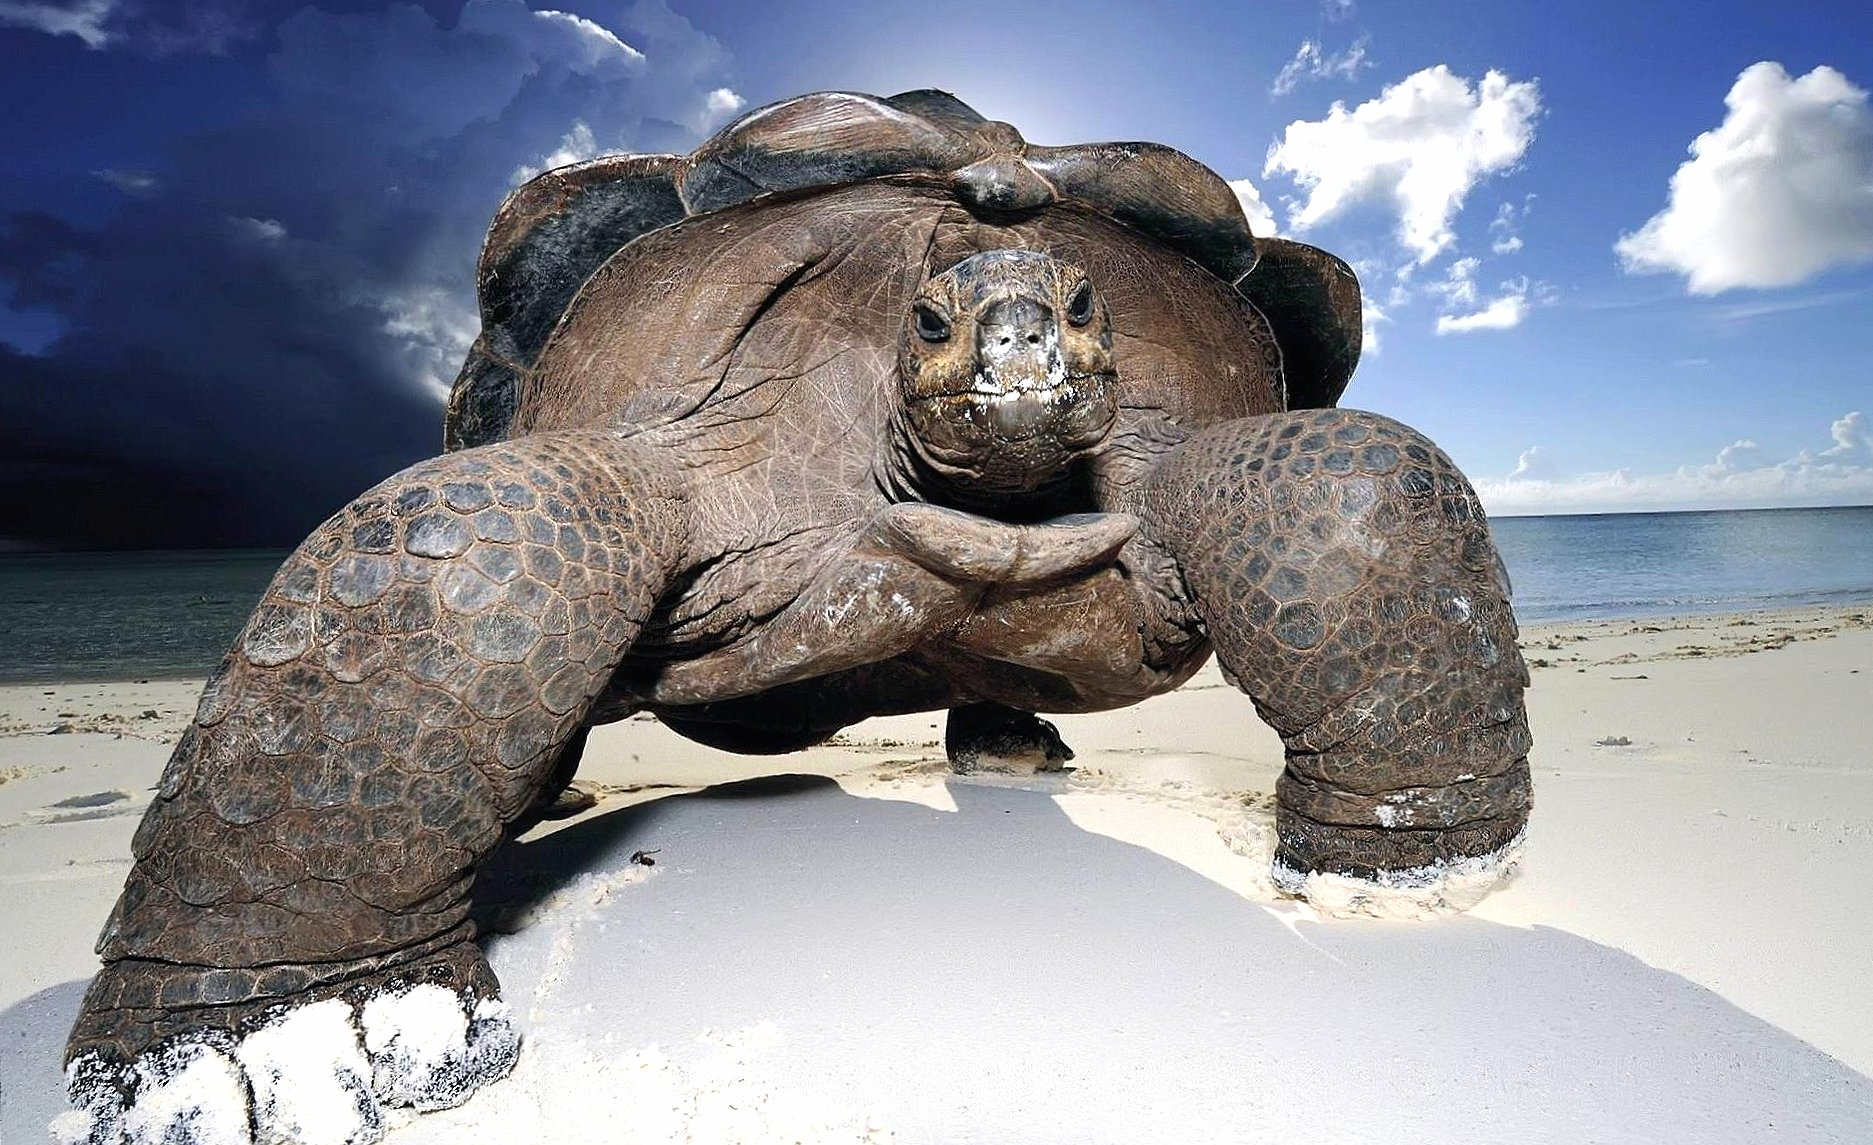 Galapagos giant tortoise wallpapers HD quality